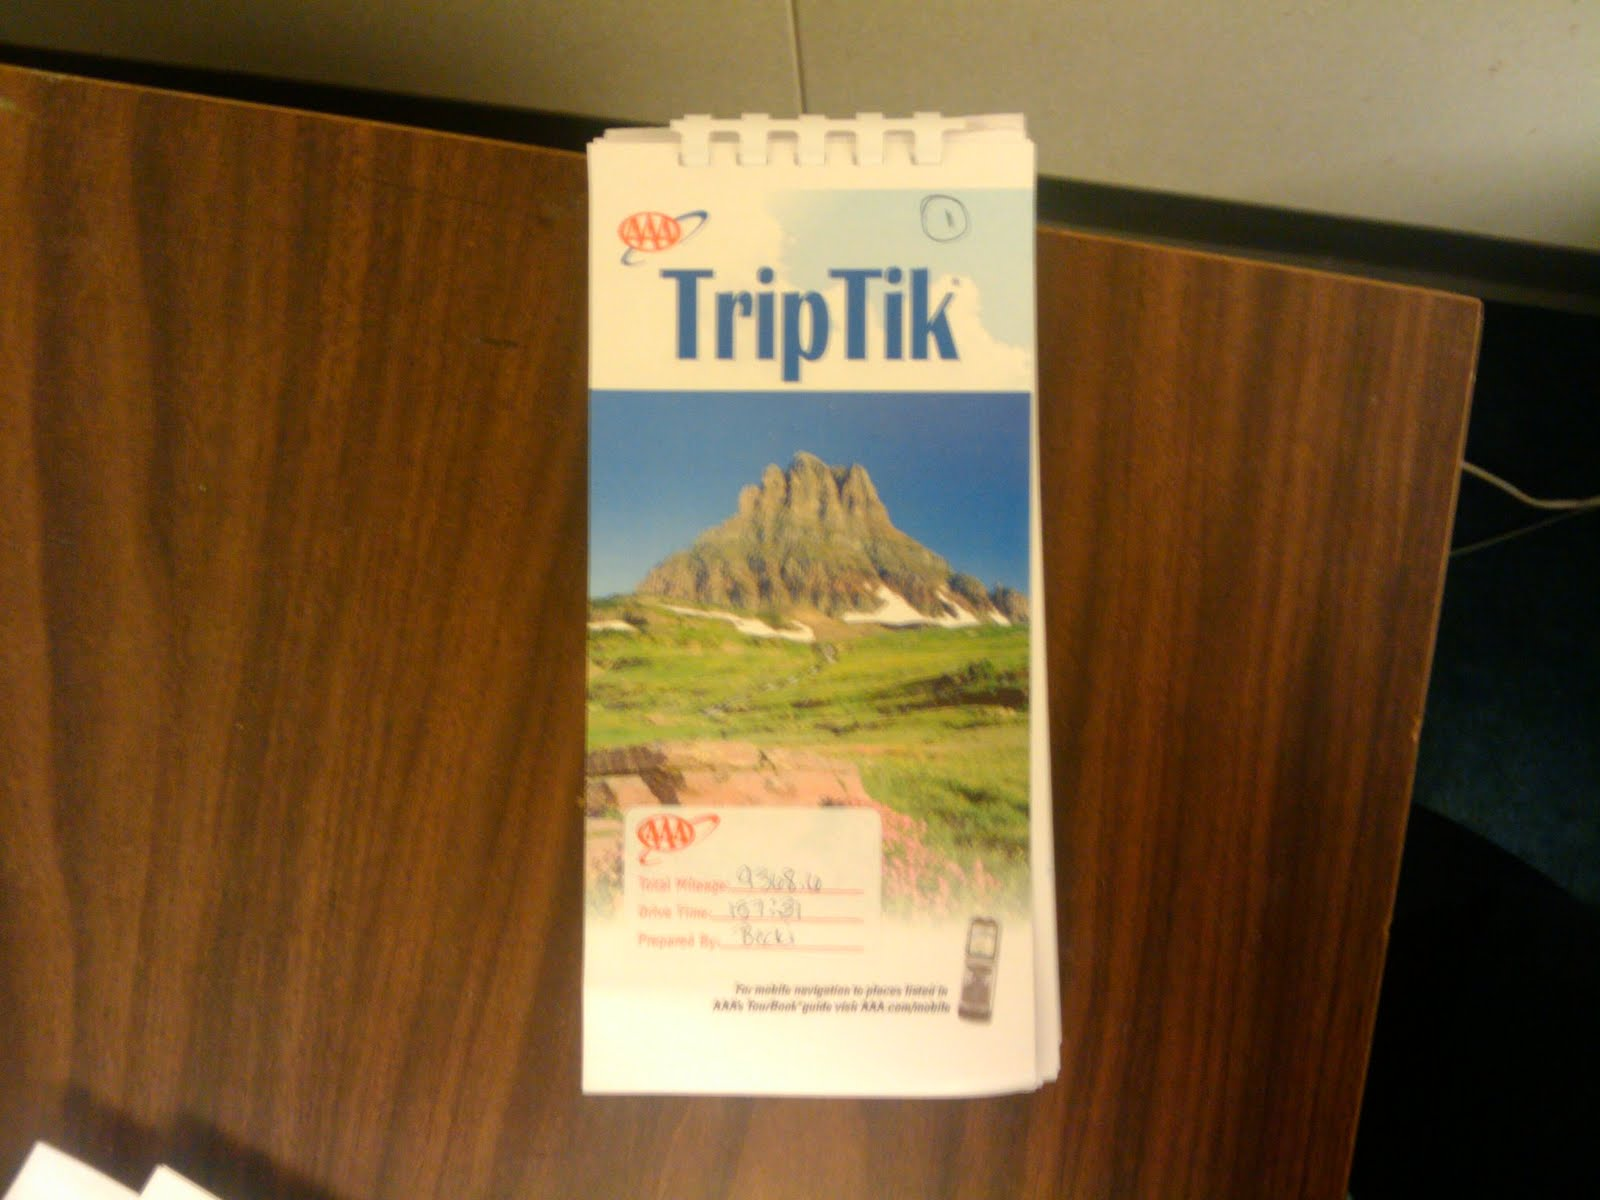 Chris Allens Spectacularly Mediocre Blog The AAA TripTik – Aaa Travel Maps